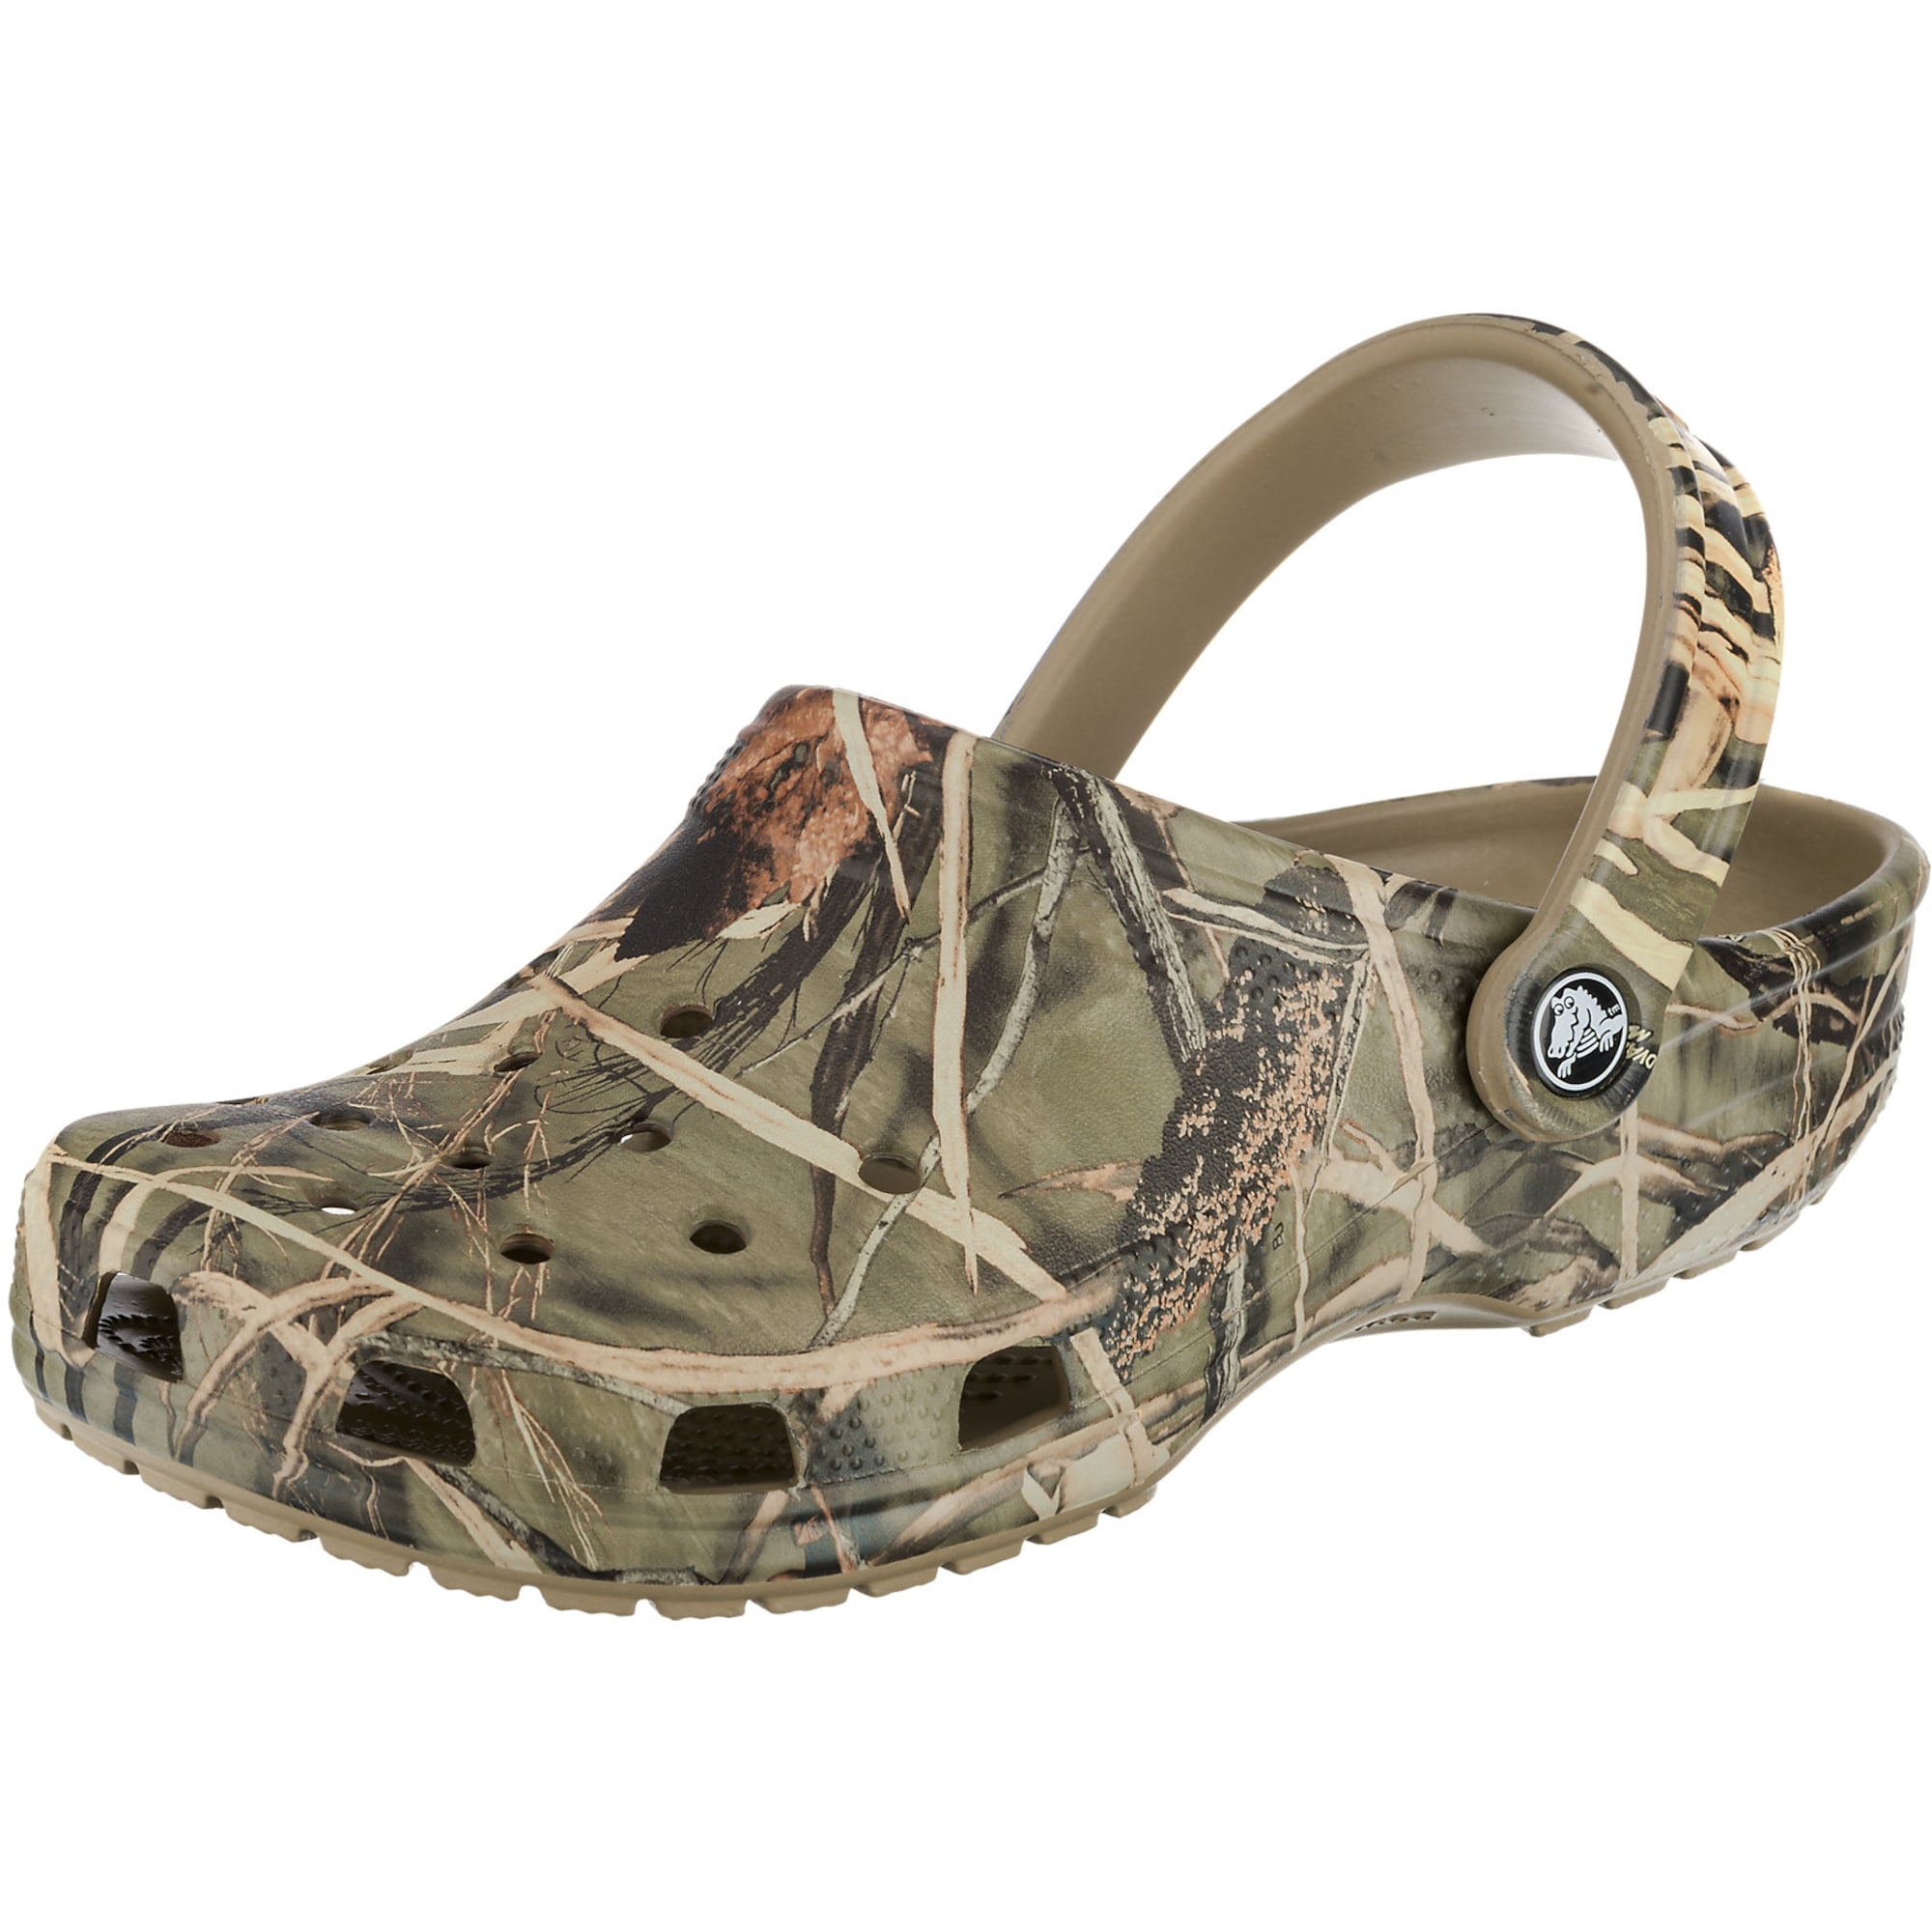 Clogs 'Classic Realtree' | Schuhe > Clogs & Pantoletten > Clogs | Crocs